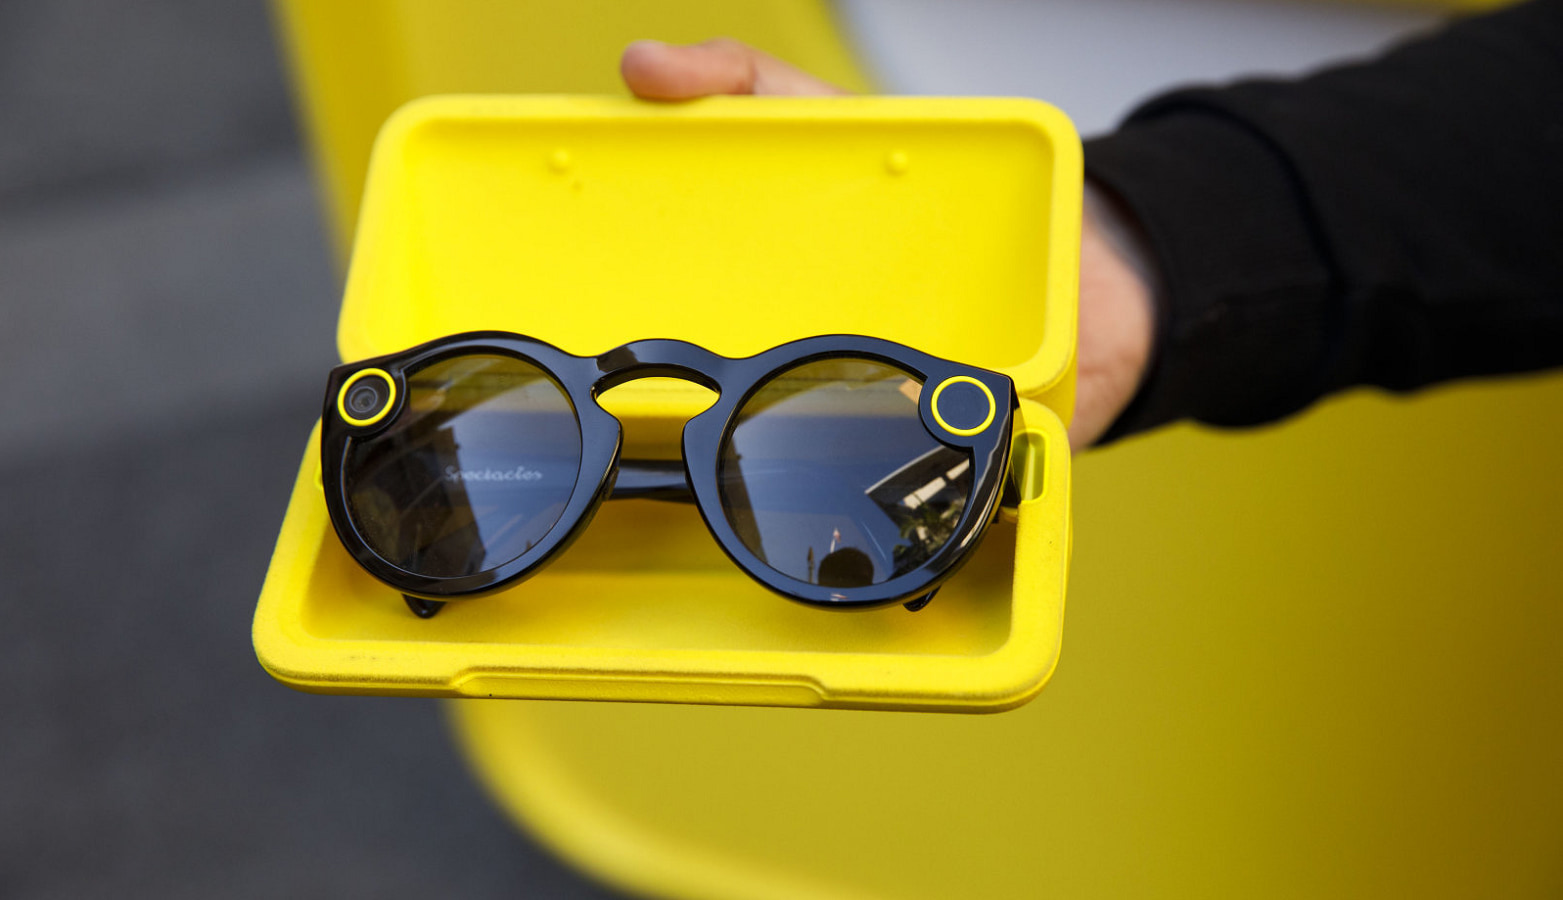 snap spectacles dual cameras